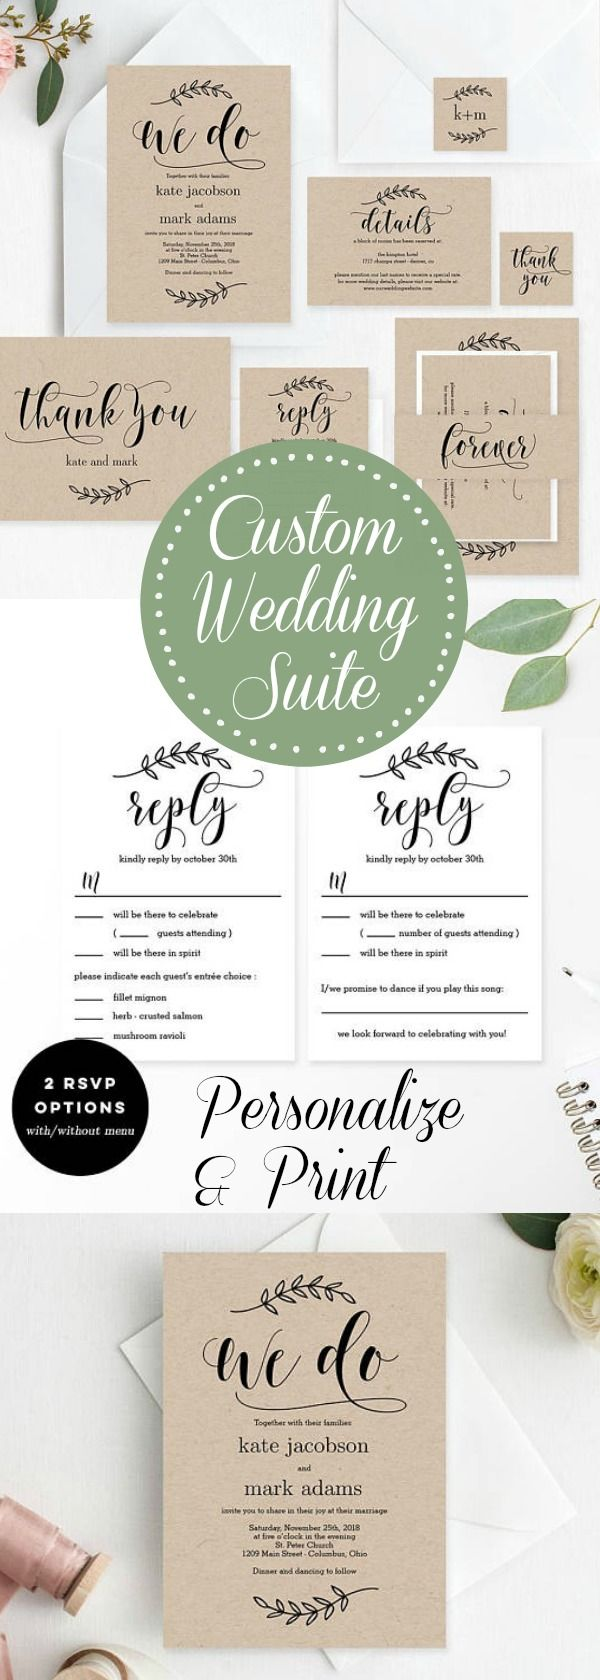 sample wording for rsvp wedding invitations%0A Rustic Elegance Wedding Suite   This printable wedding invitation template  set is an easy and affordable way to create your own stylish wedding suite